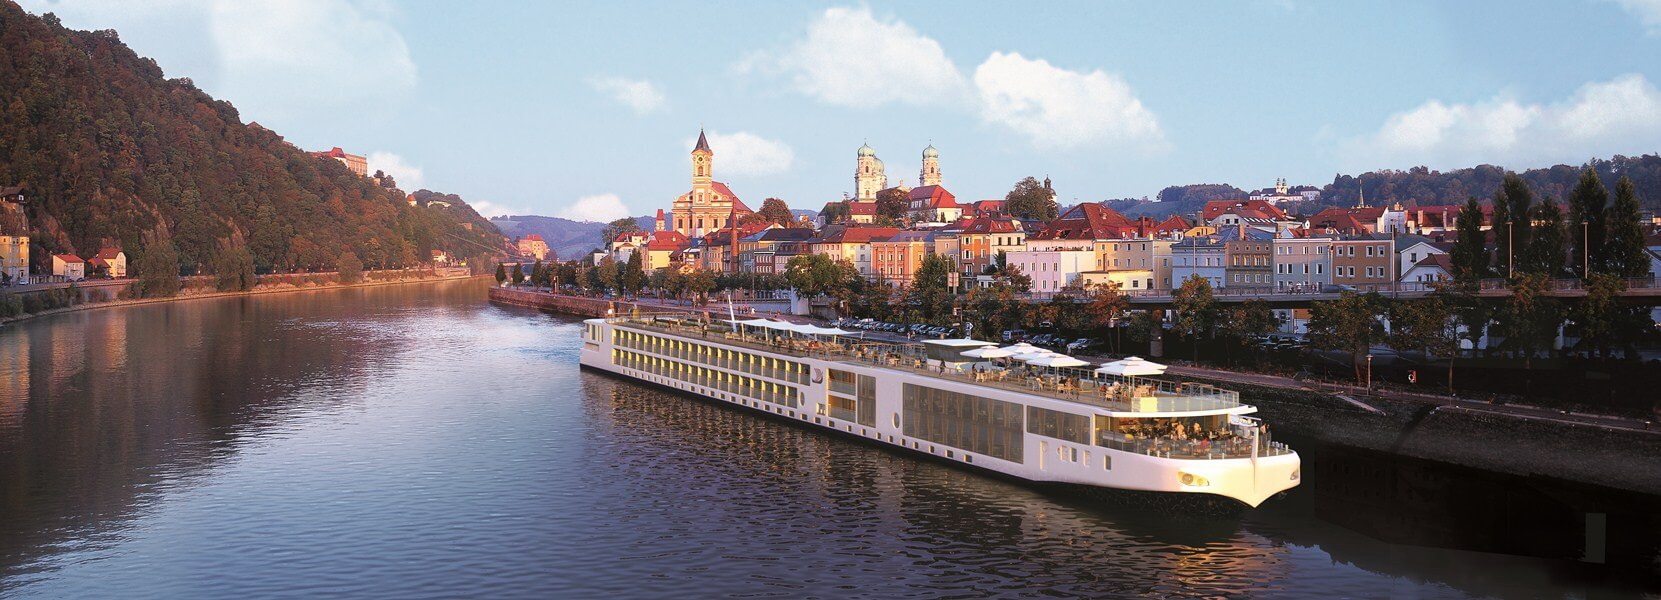 Viking Cruises to Cruise on the Missisippi River